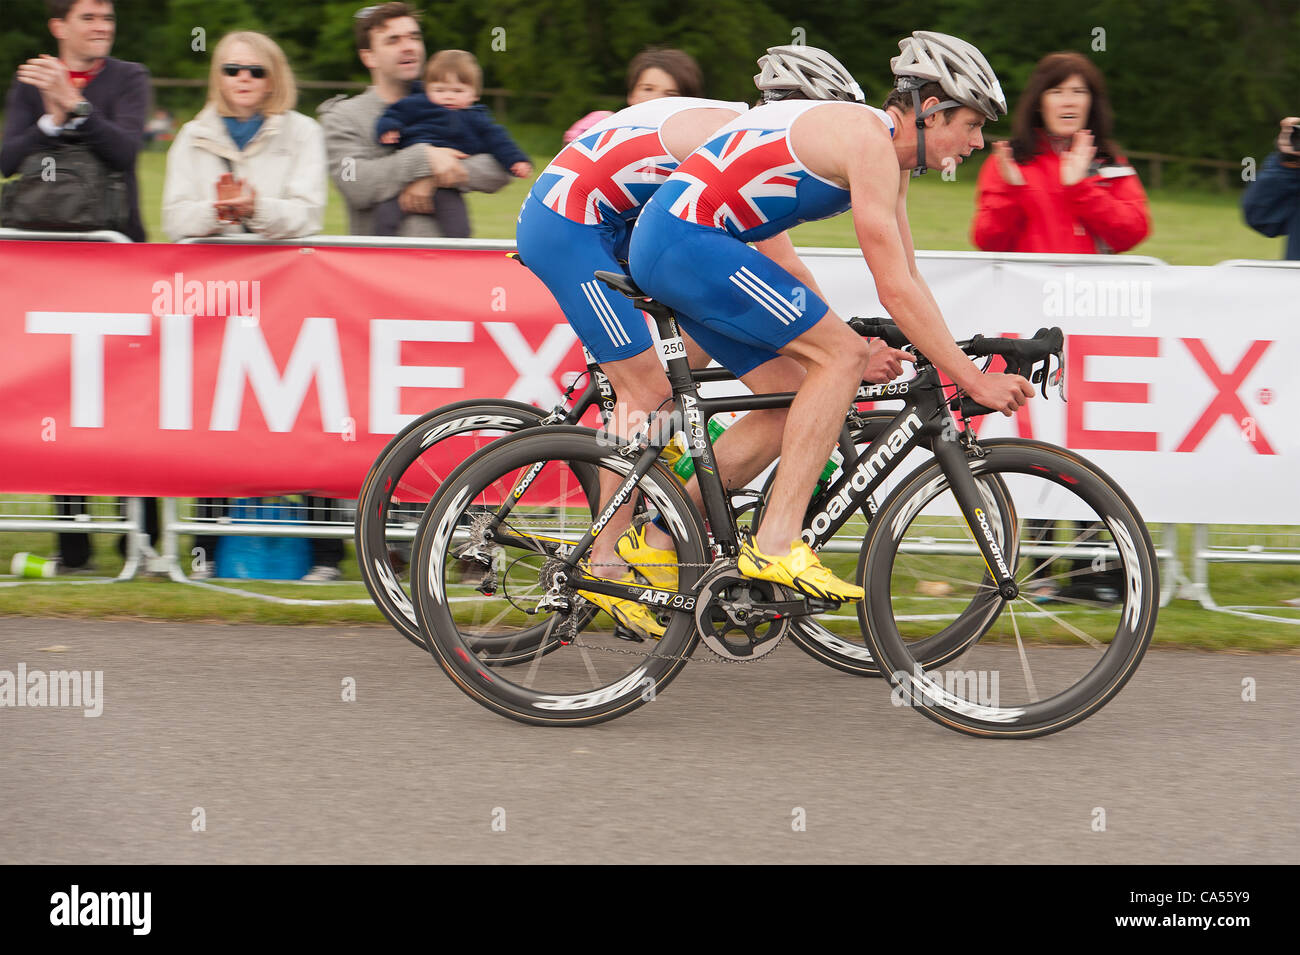 Saturday 9th June Blenheim Palace, UK. Brothers Alistair and Jonny (Jonathan) Brownlee ahead of the field in the - Stock Image